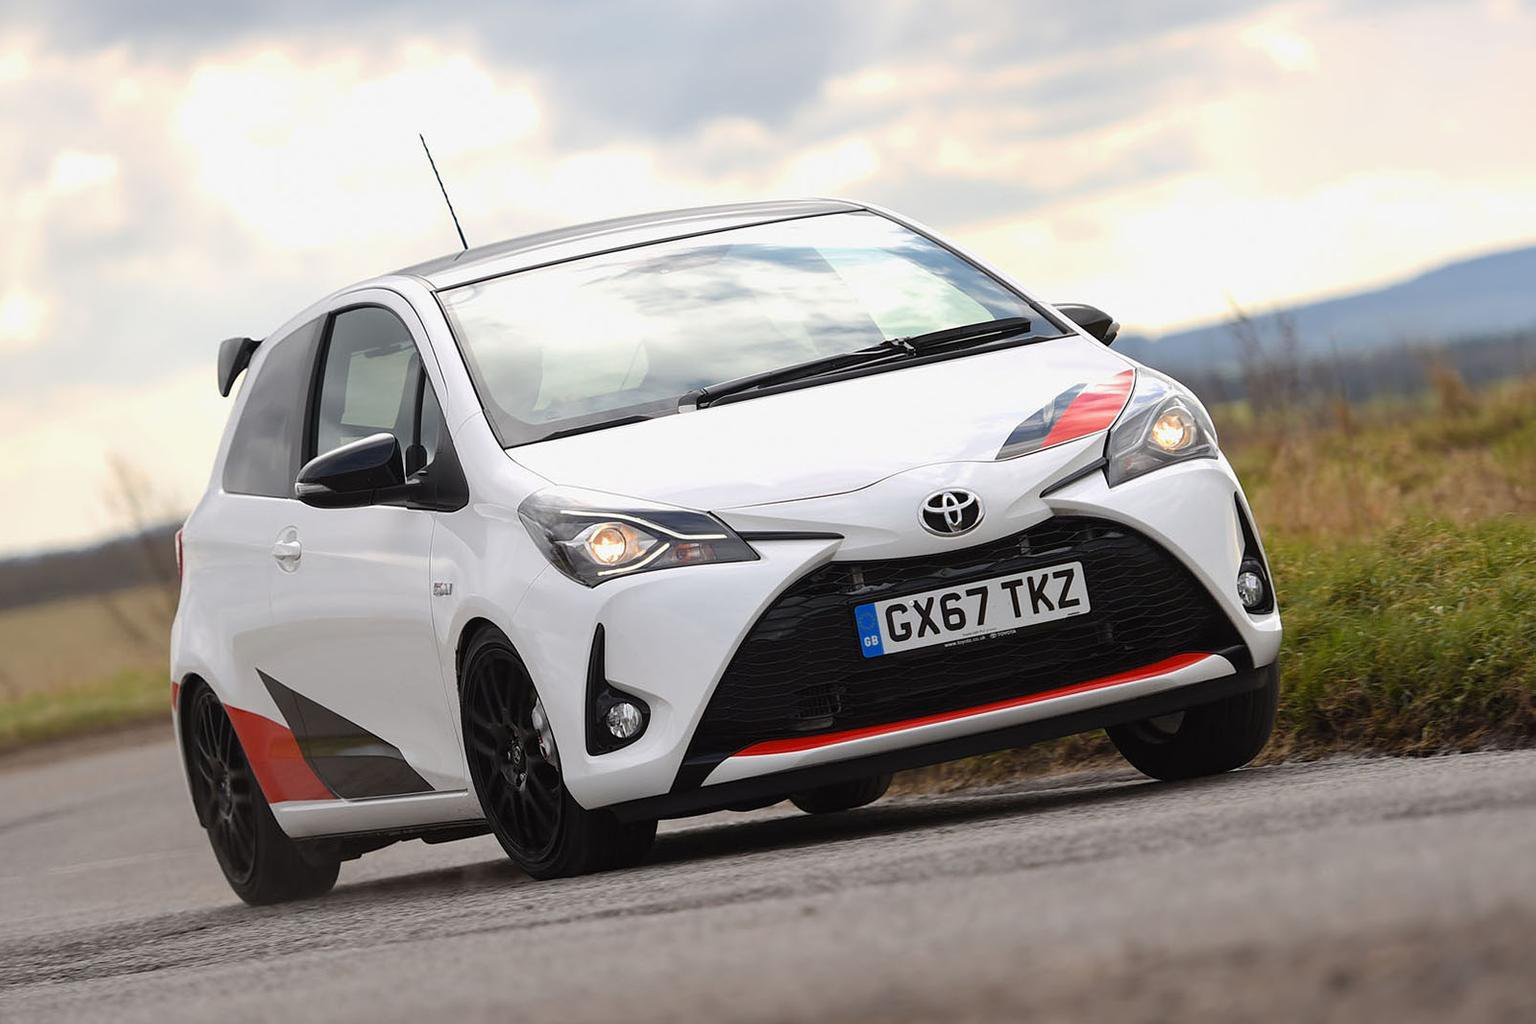 2018 Toyota Yaris GRMN review – price, specs and release date